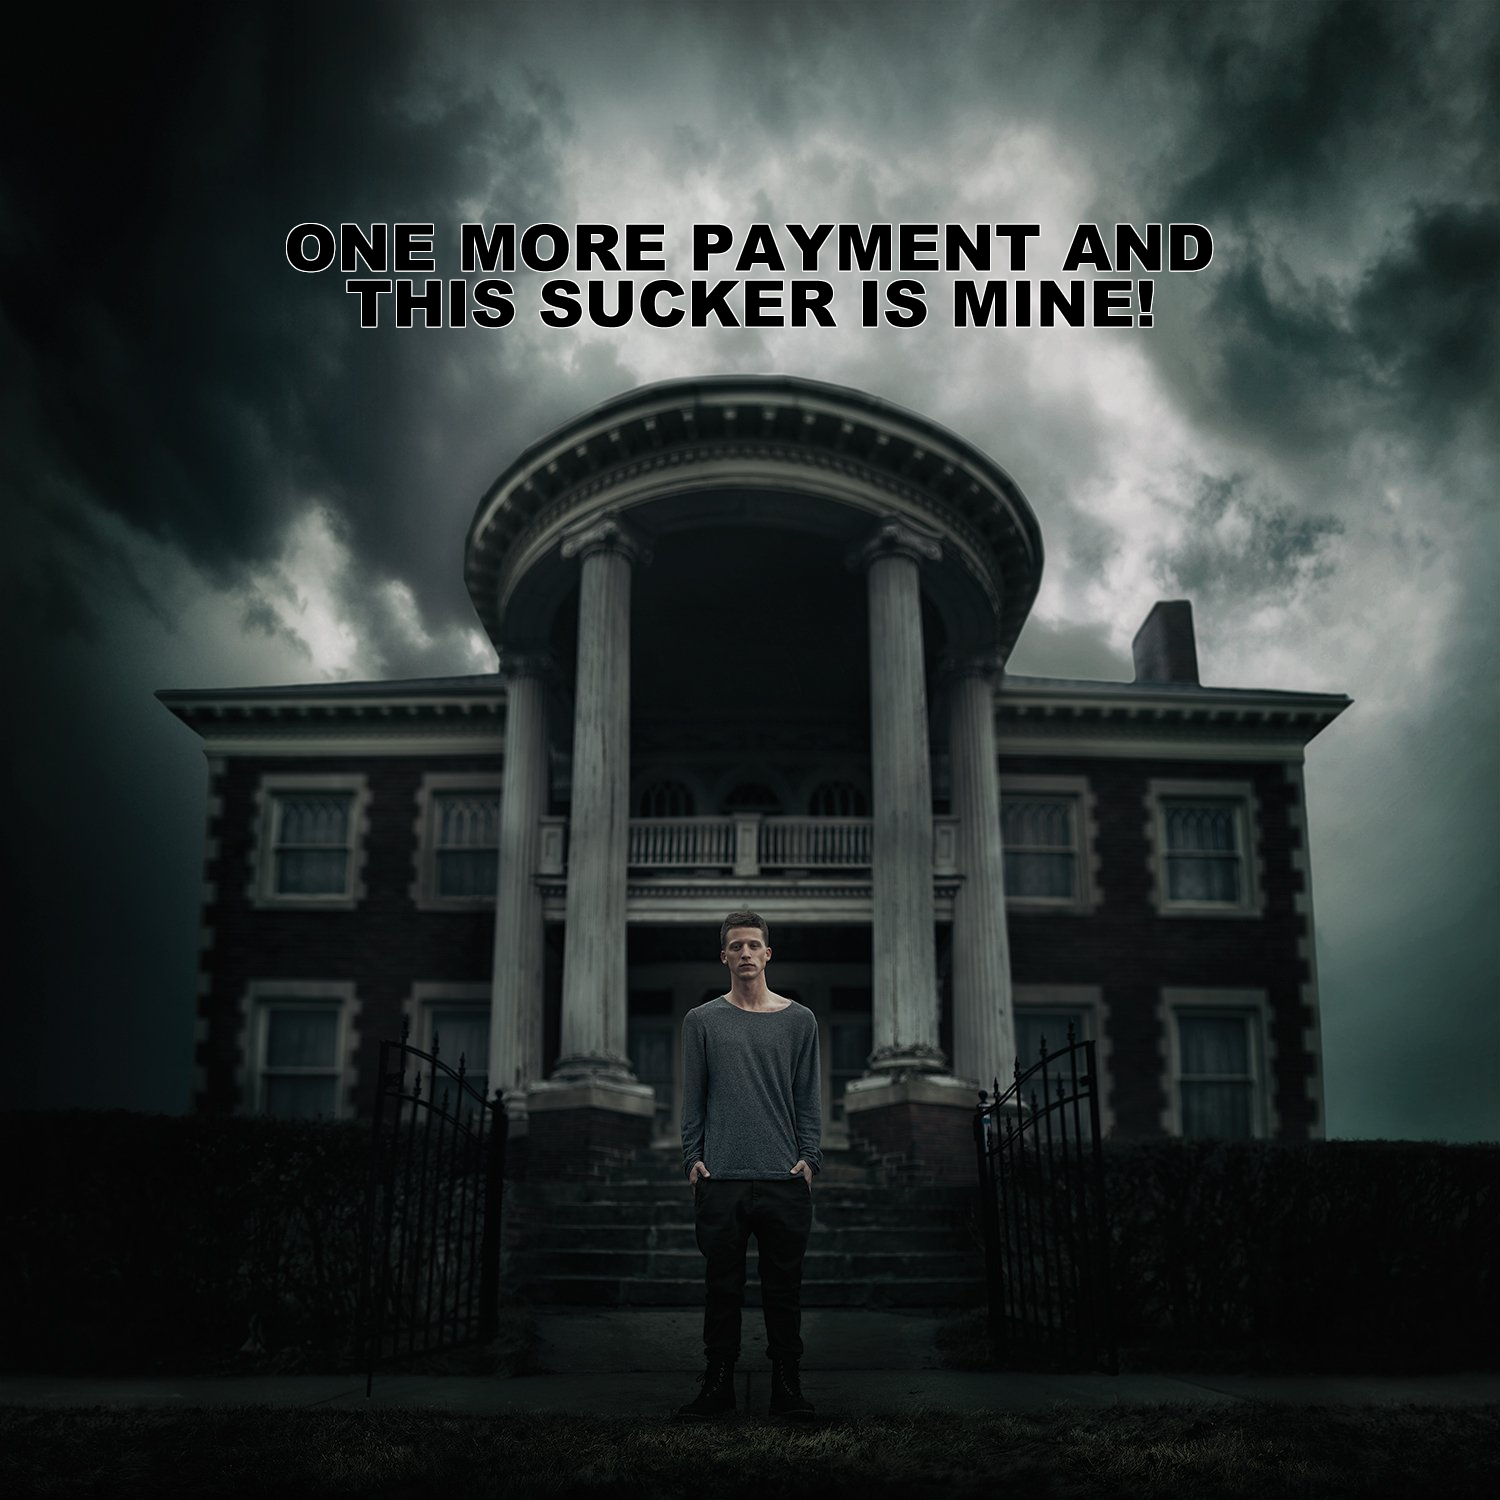 Album cover parody of Mansion by NF